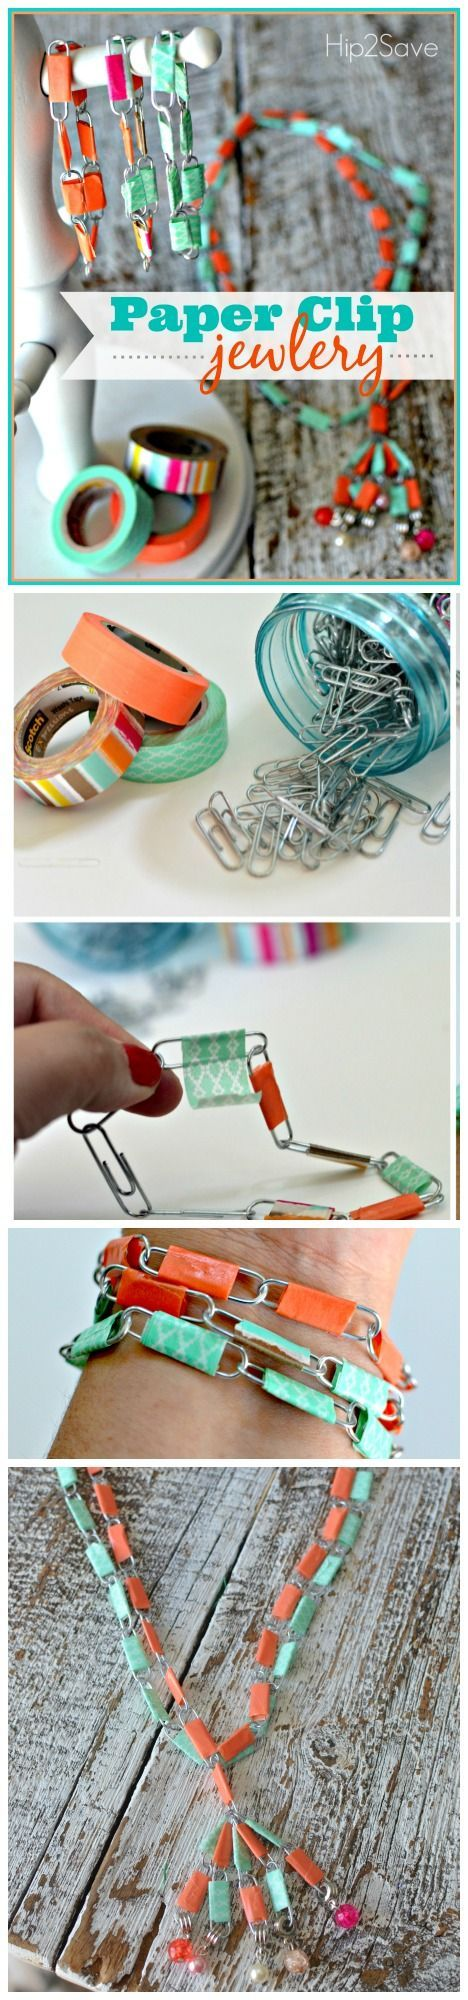 This is a wonderful children's activity for you and the girls. This DIY jewelry paper clip bracelet is easy to do as a family. So put this activity on your schedule and then sit down together and make some colorful bracelets.